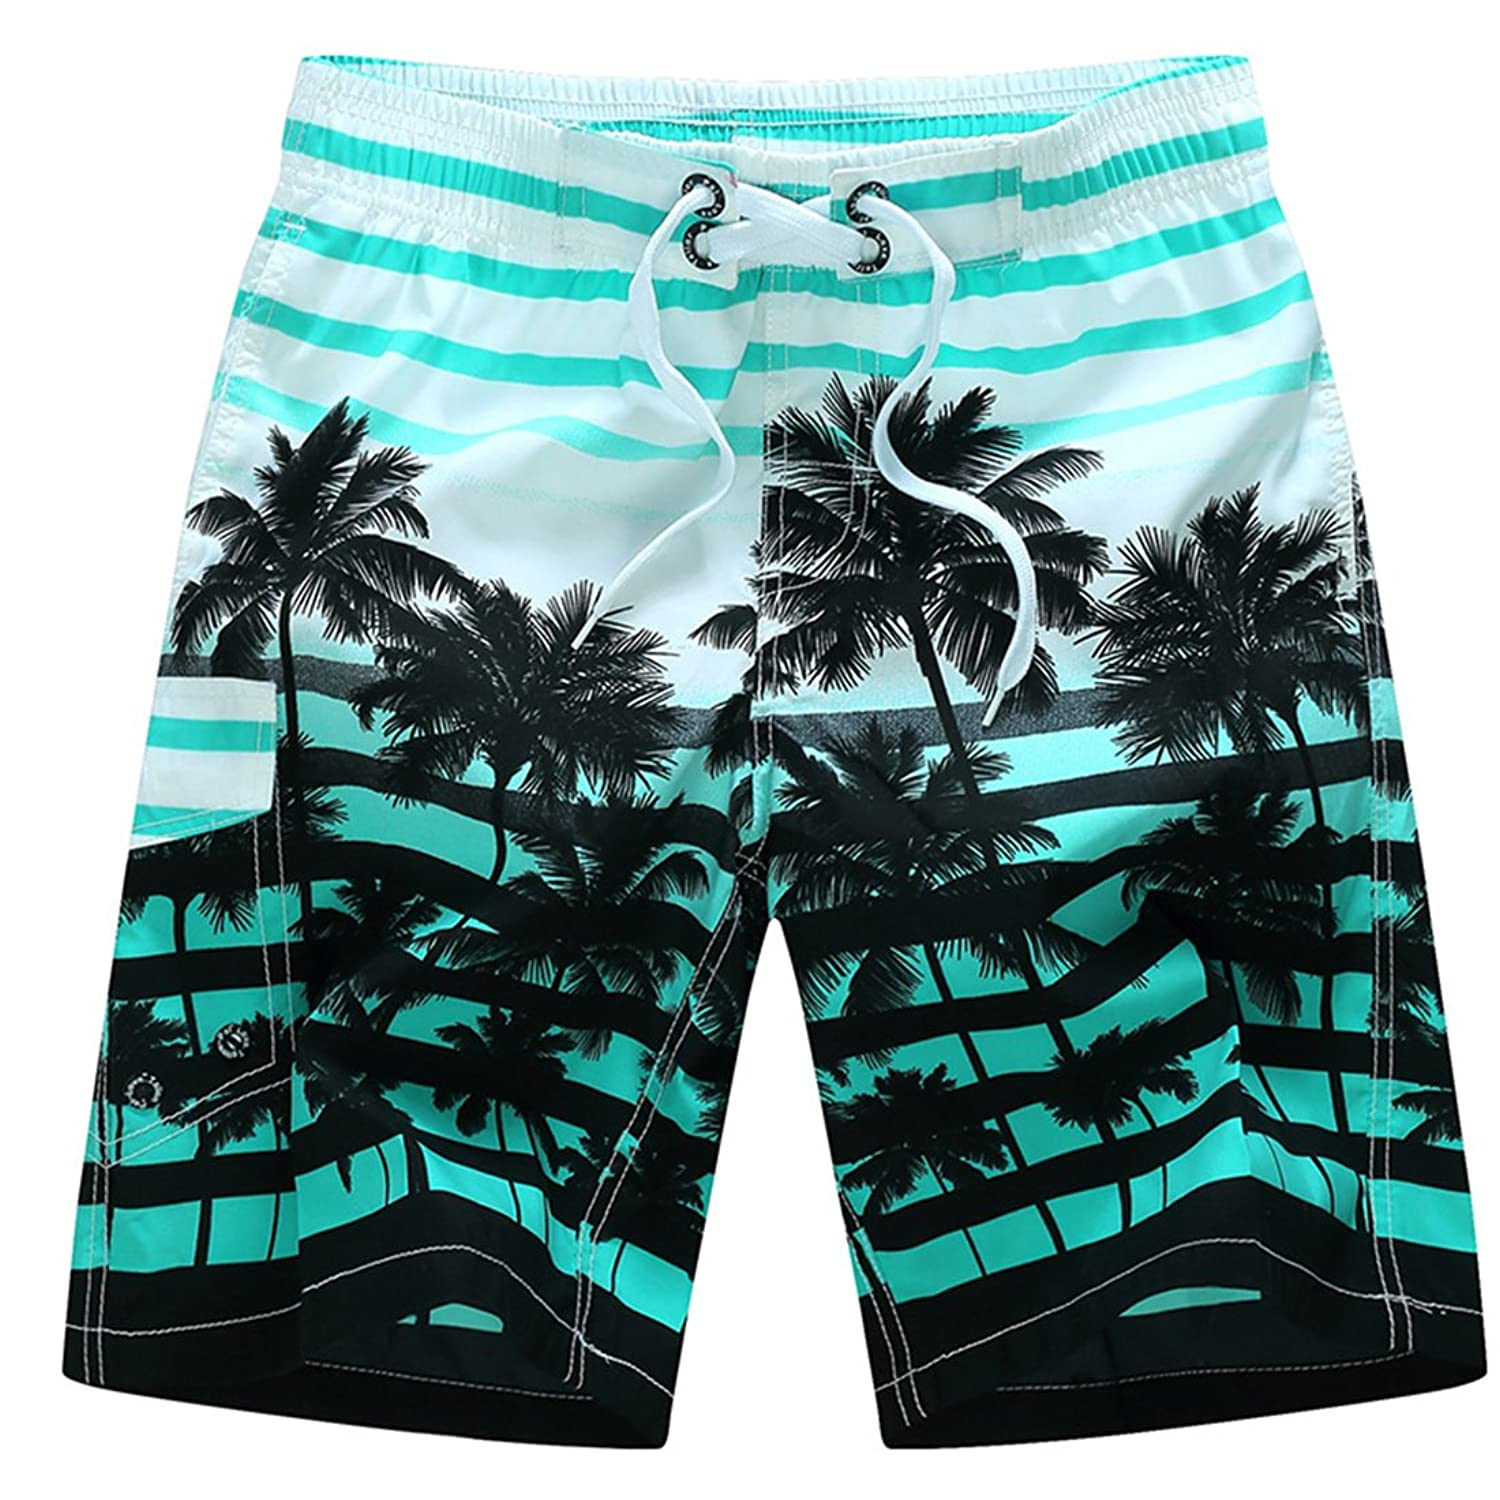 Abangoo Men's Swim Trunks Quick Dry Beach Shorts 19 Colors Swimming Watershort Elastic Waist Shorts